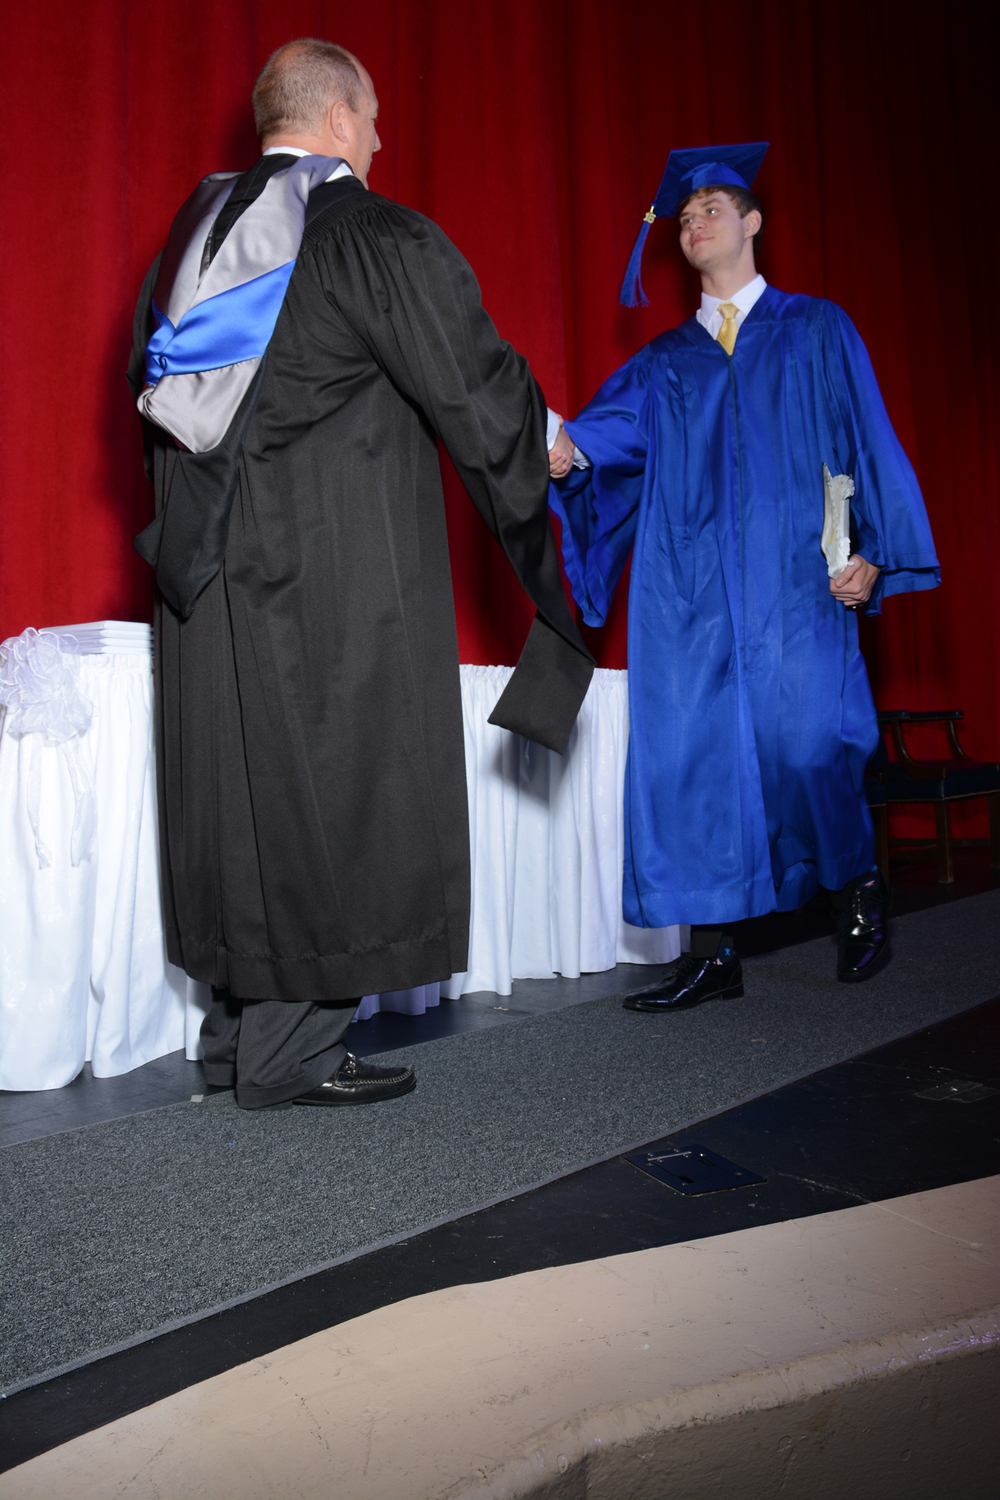 May16 GraduationPhotos179.jpg